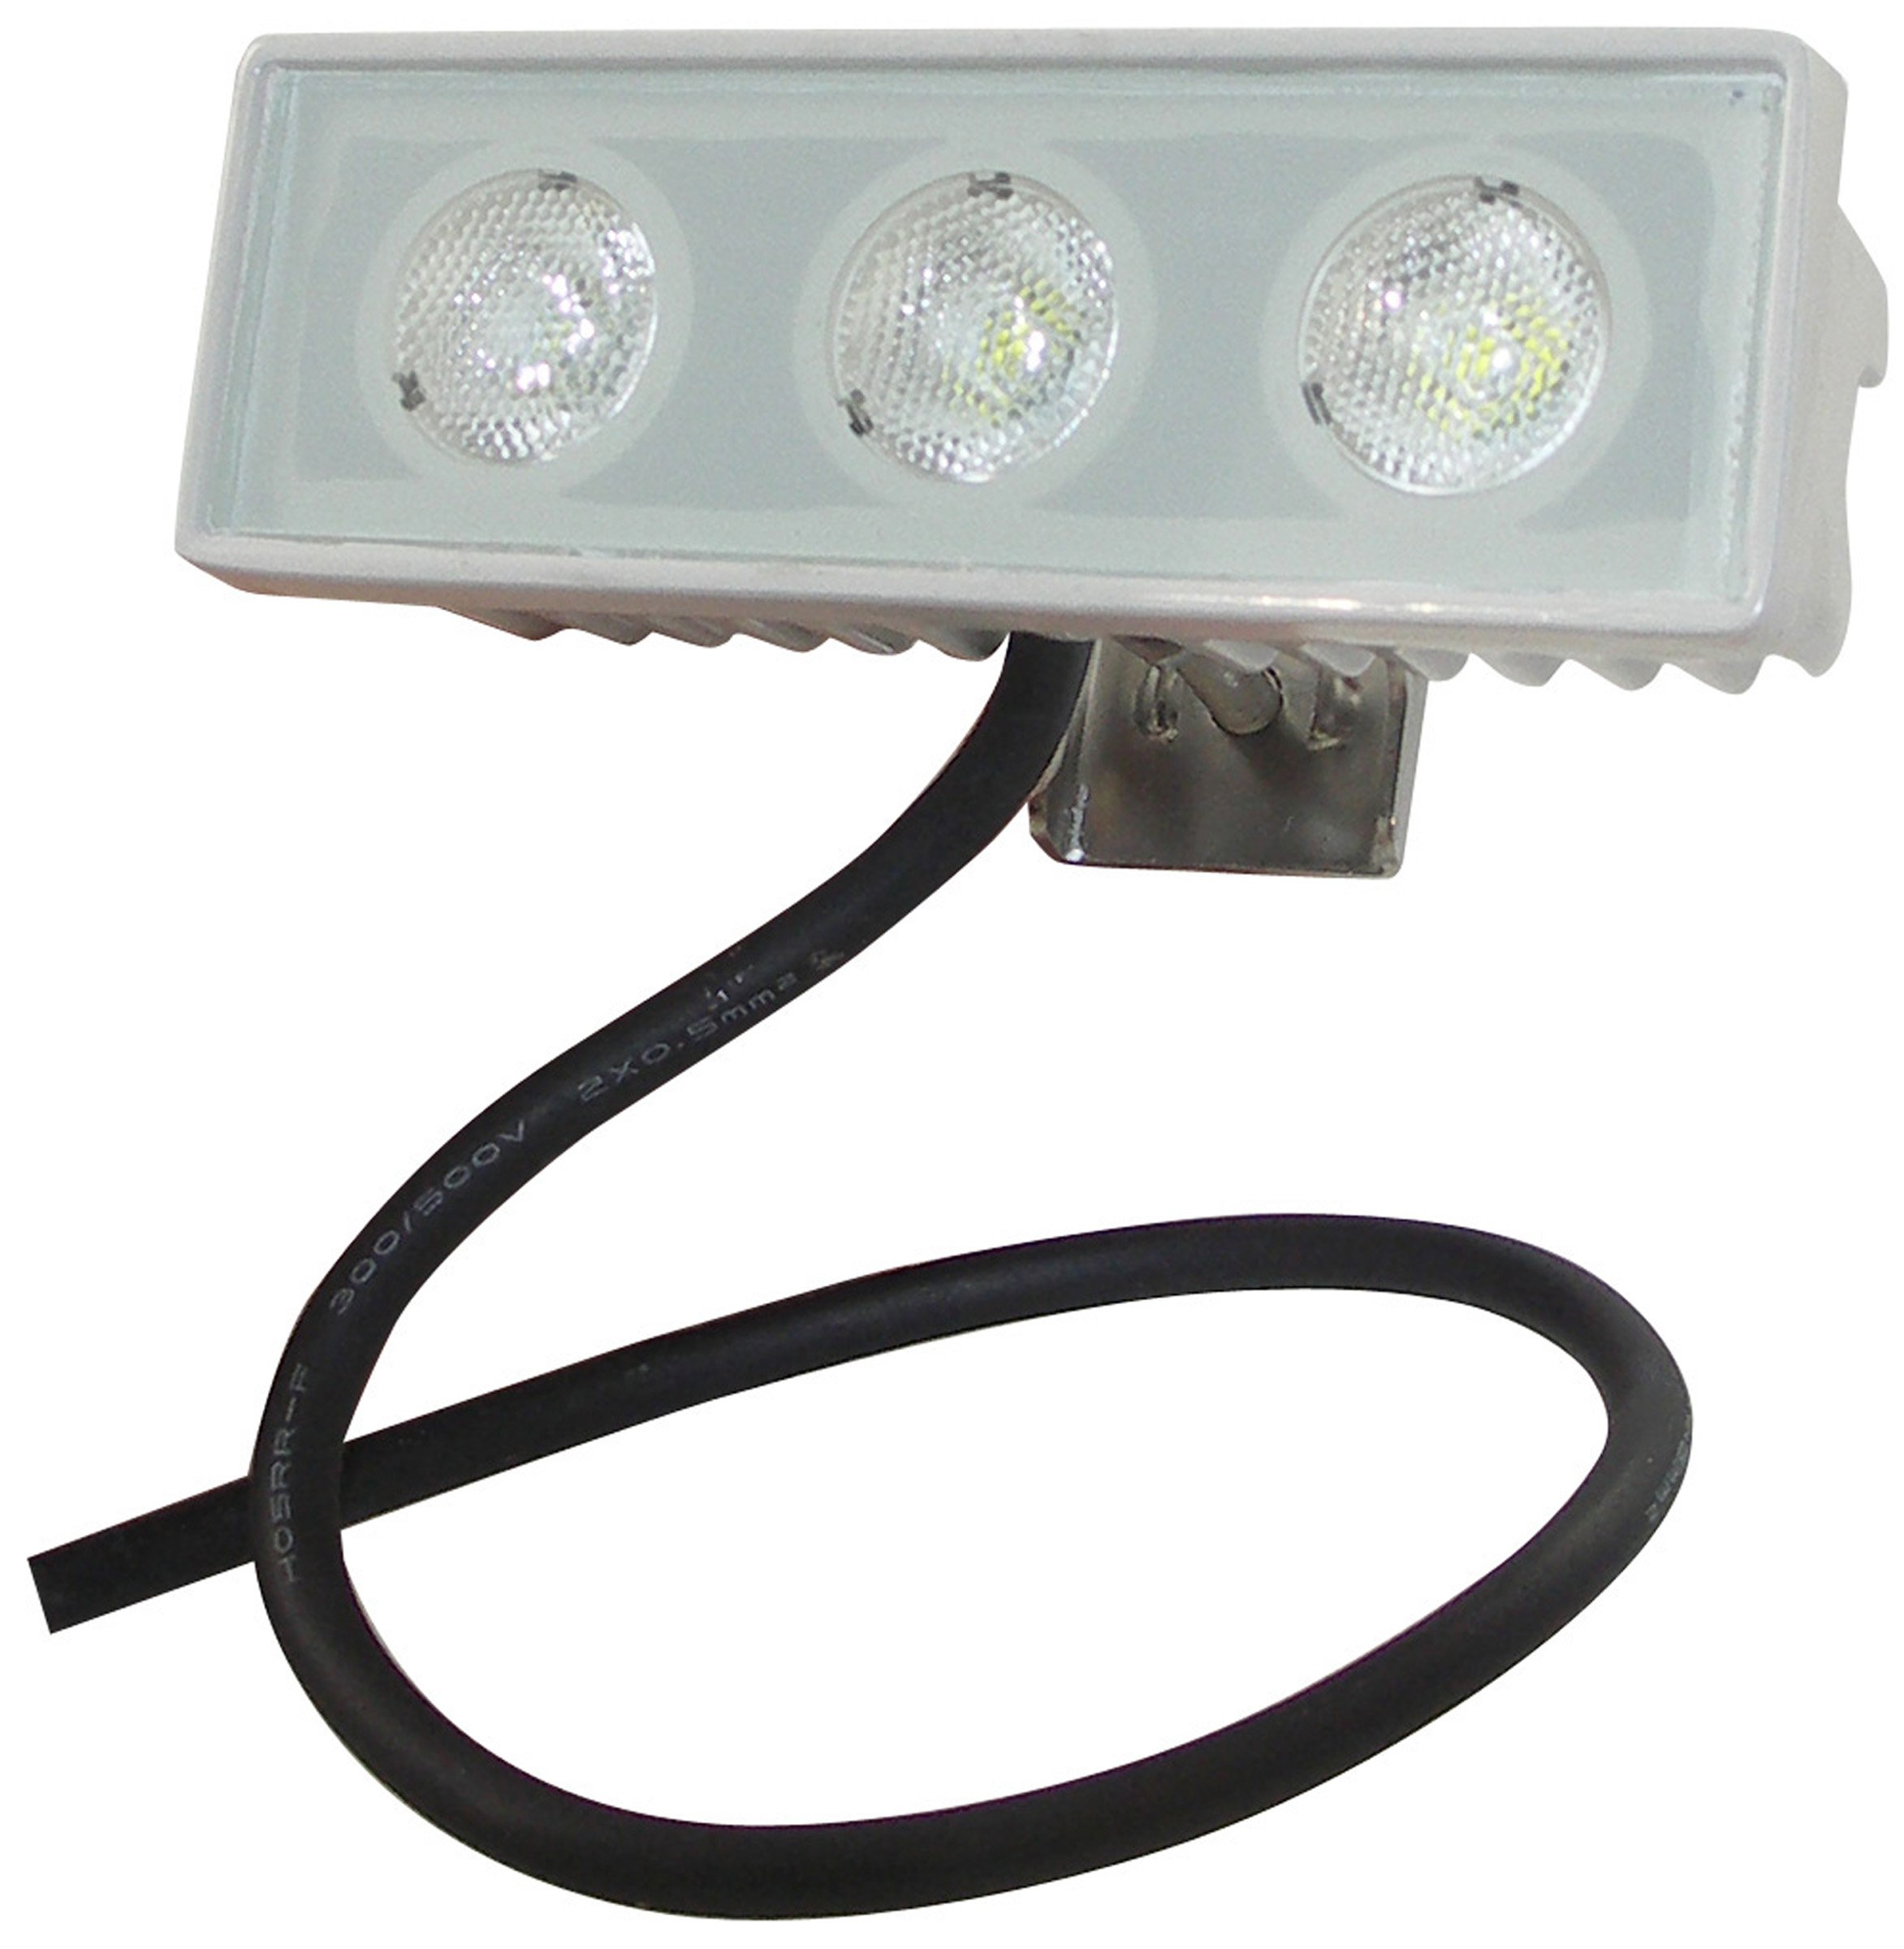 Shoreline Marine LED Spreader/Docking Light